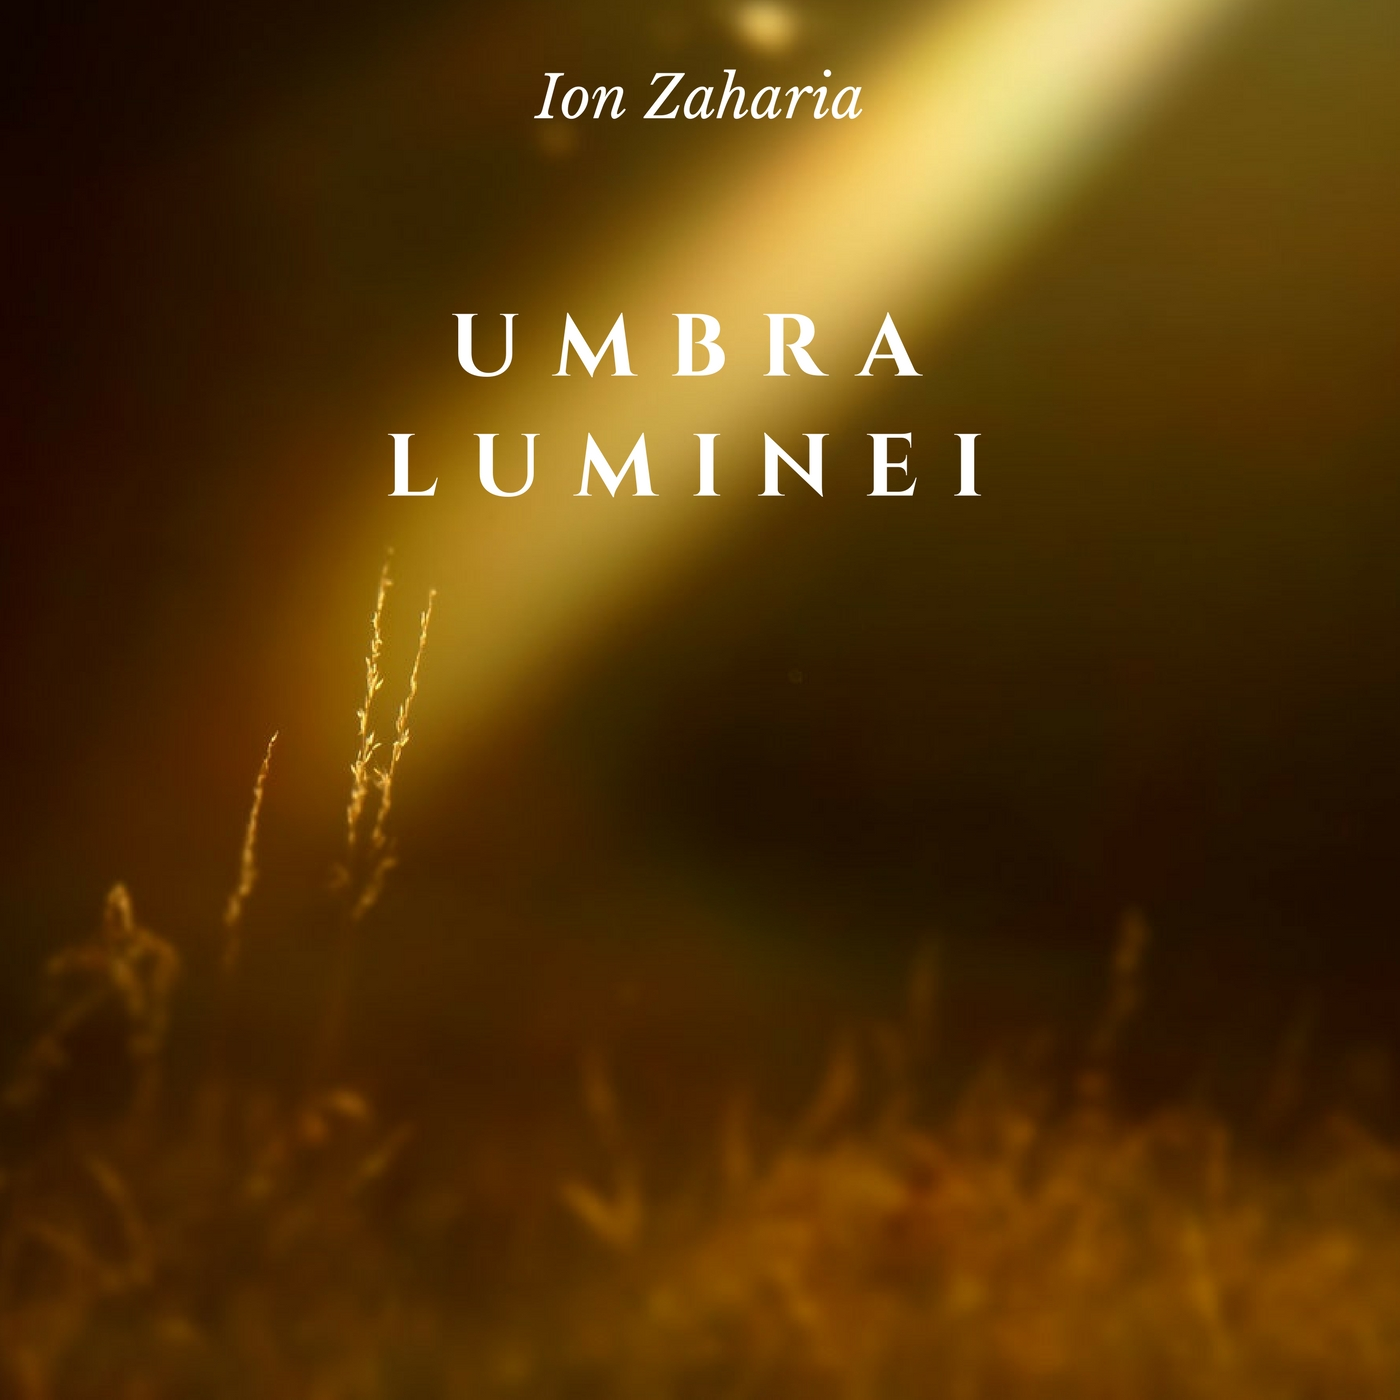 Umbra Luminei